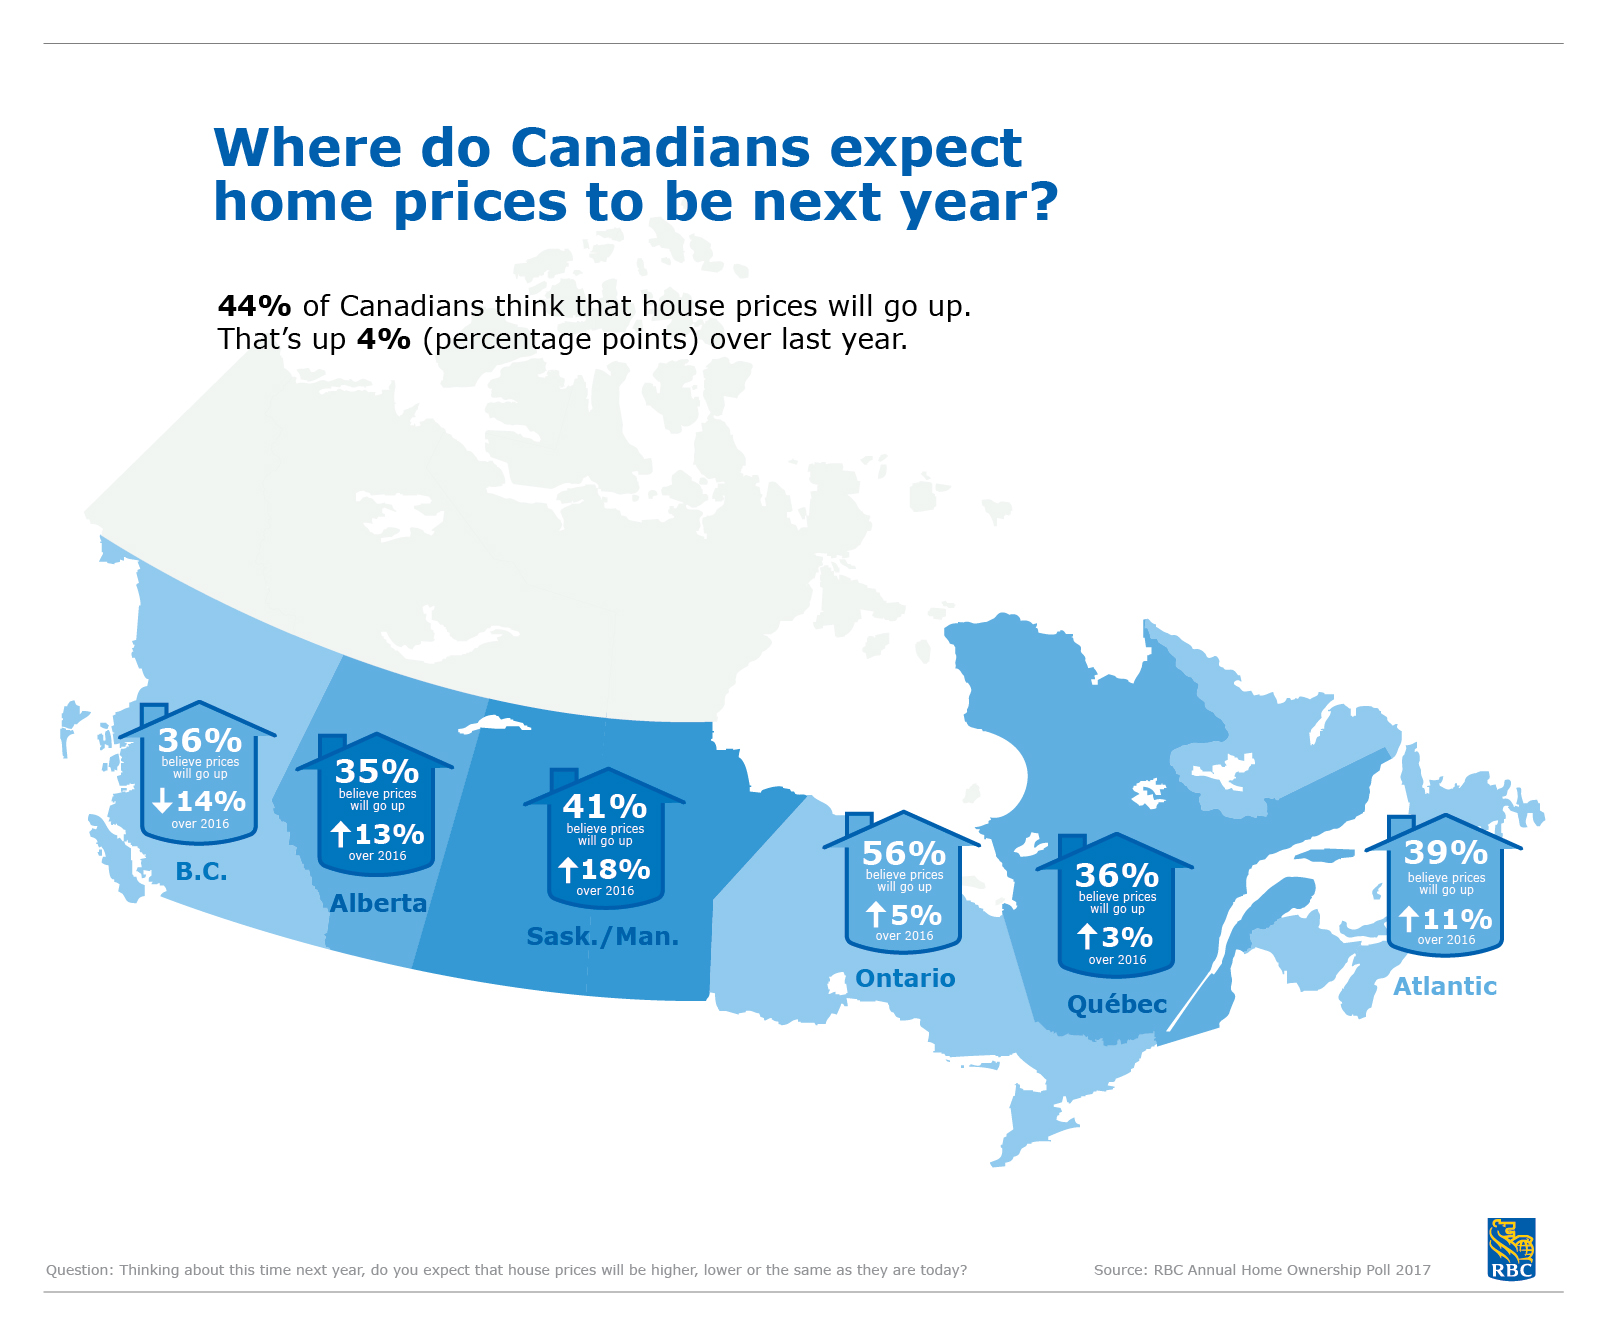 2017 RBC Home Ownership Poll: Where do Canadians expect home prices to be next year?